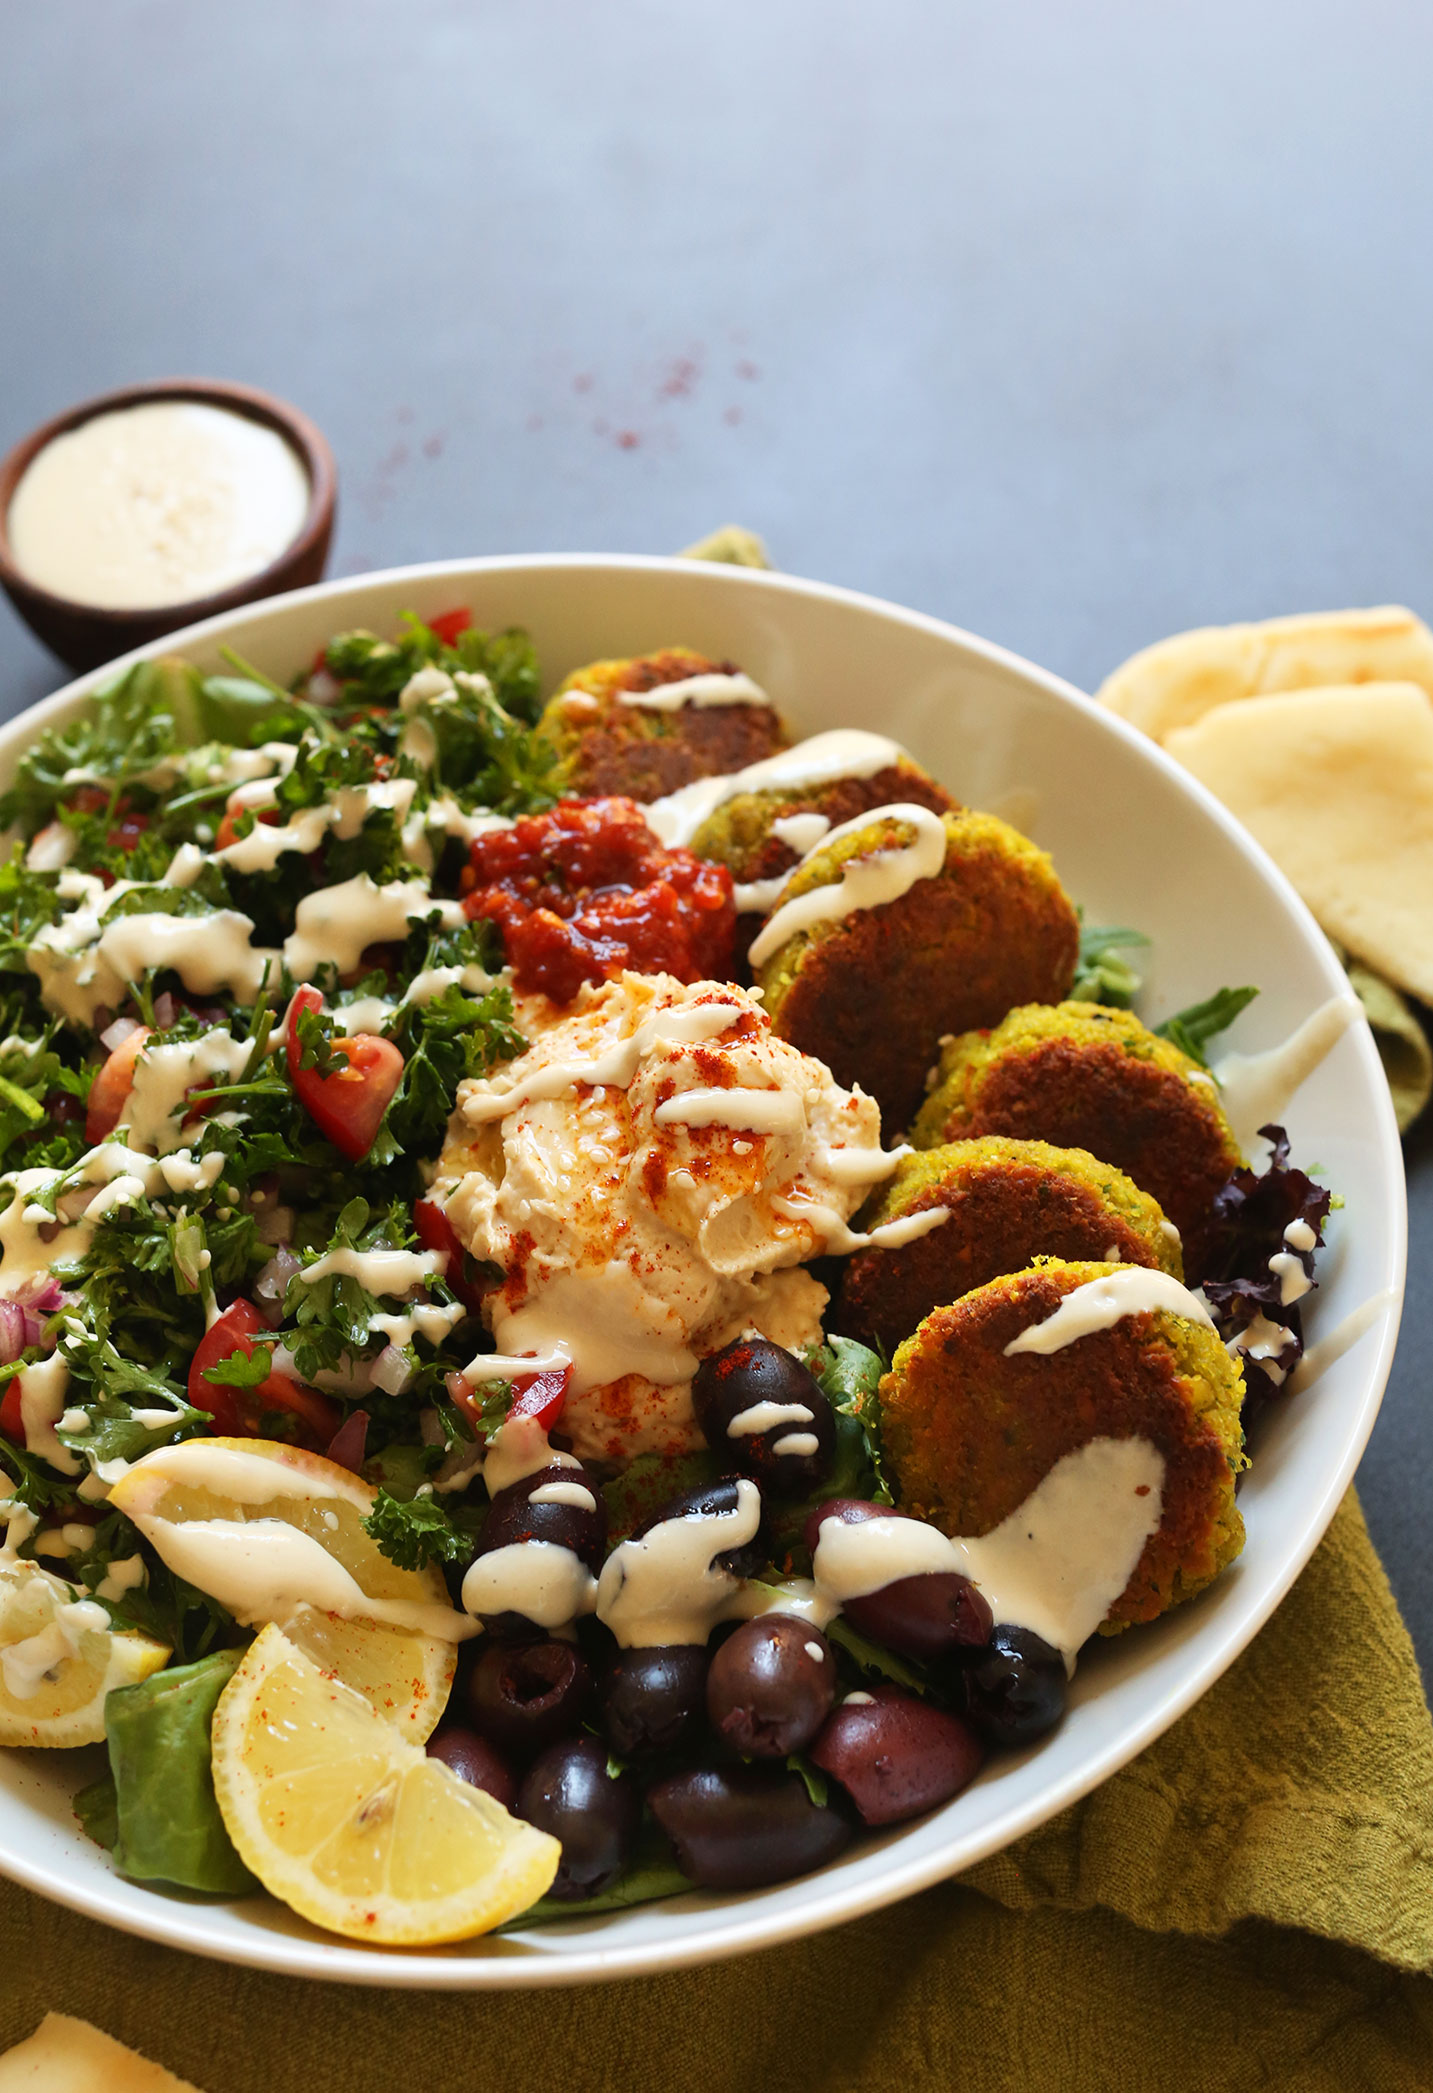 Tahini sauce drizzled over our vegan Mediterranean Bowl recipe